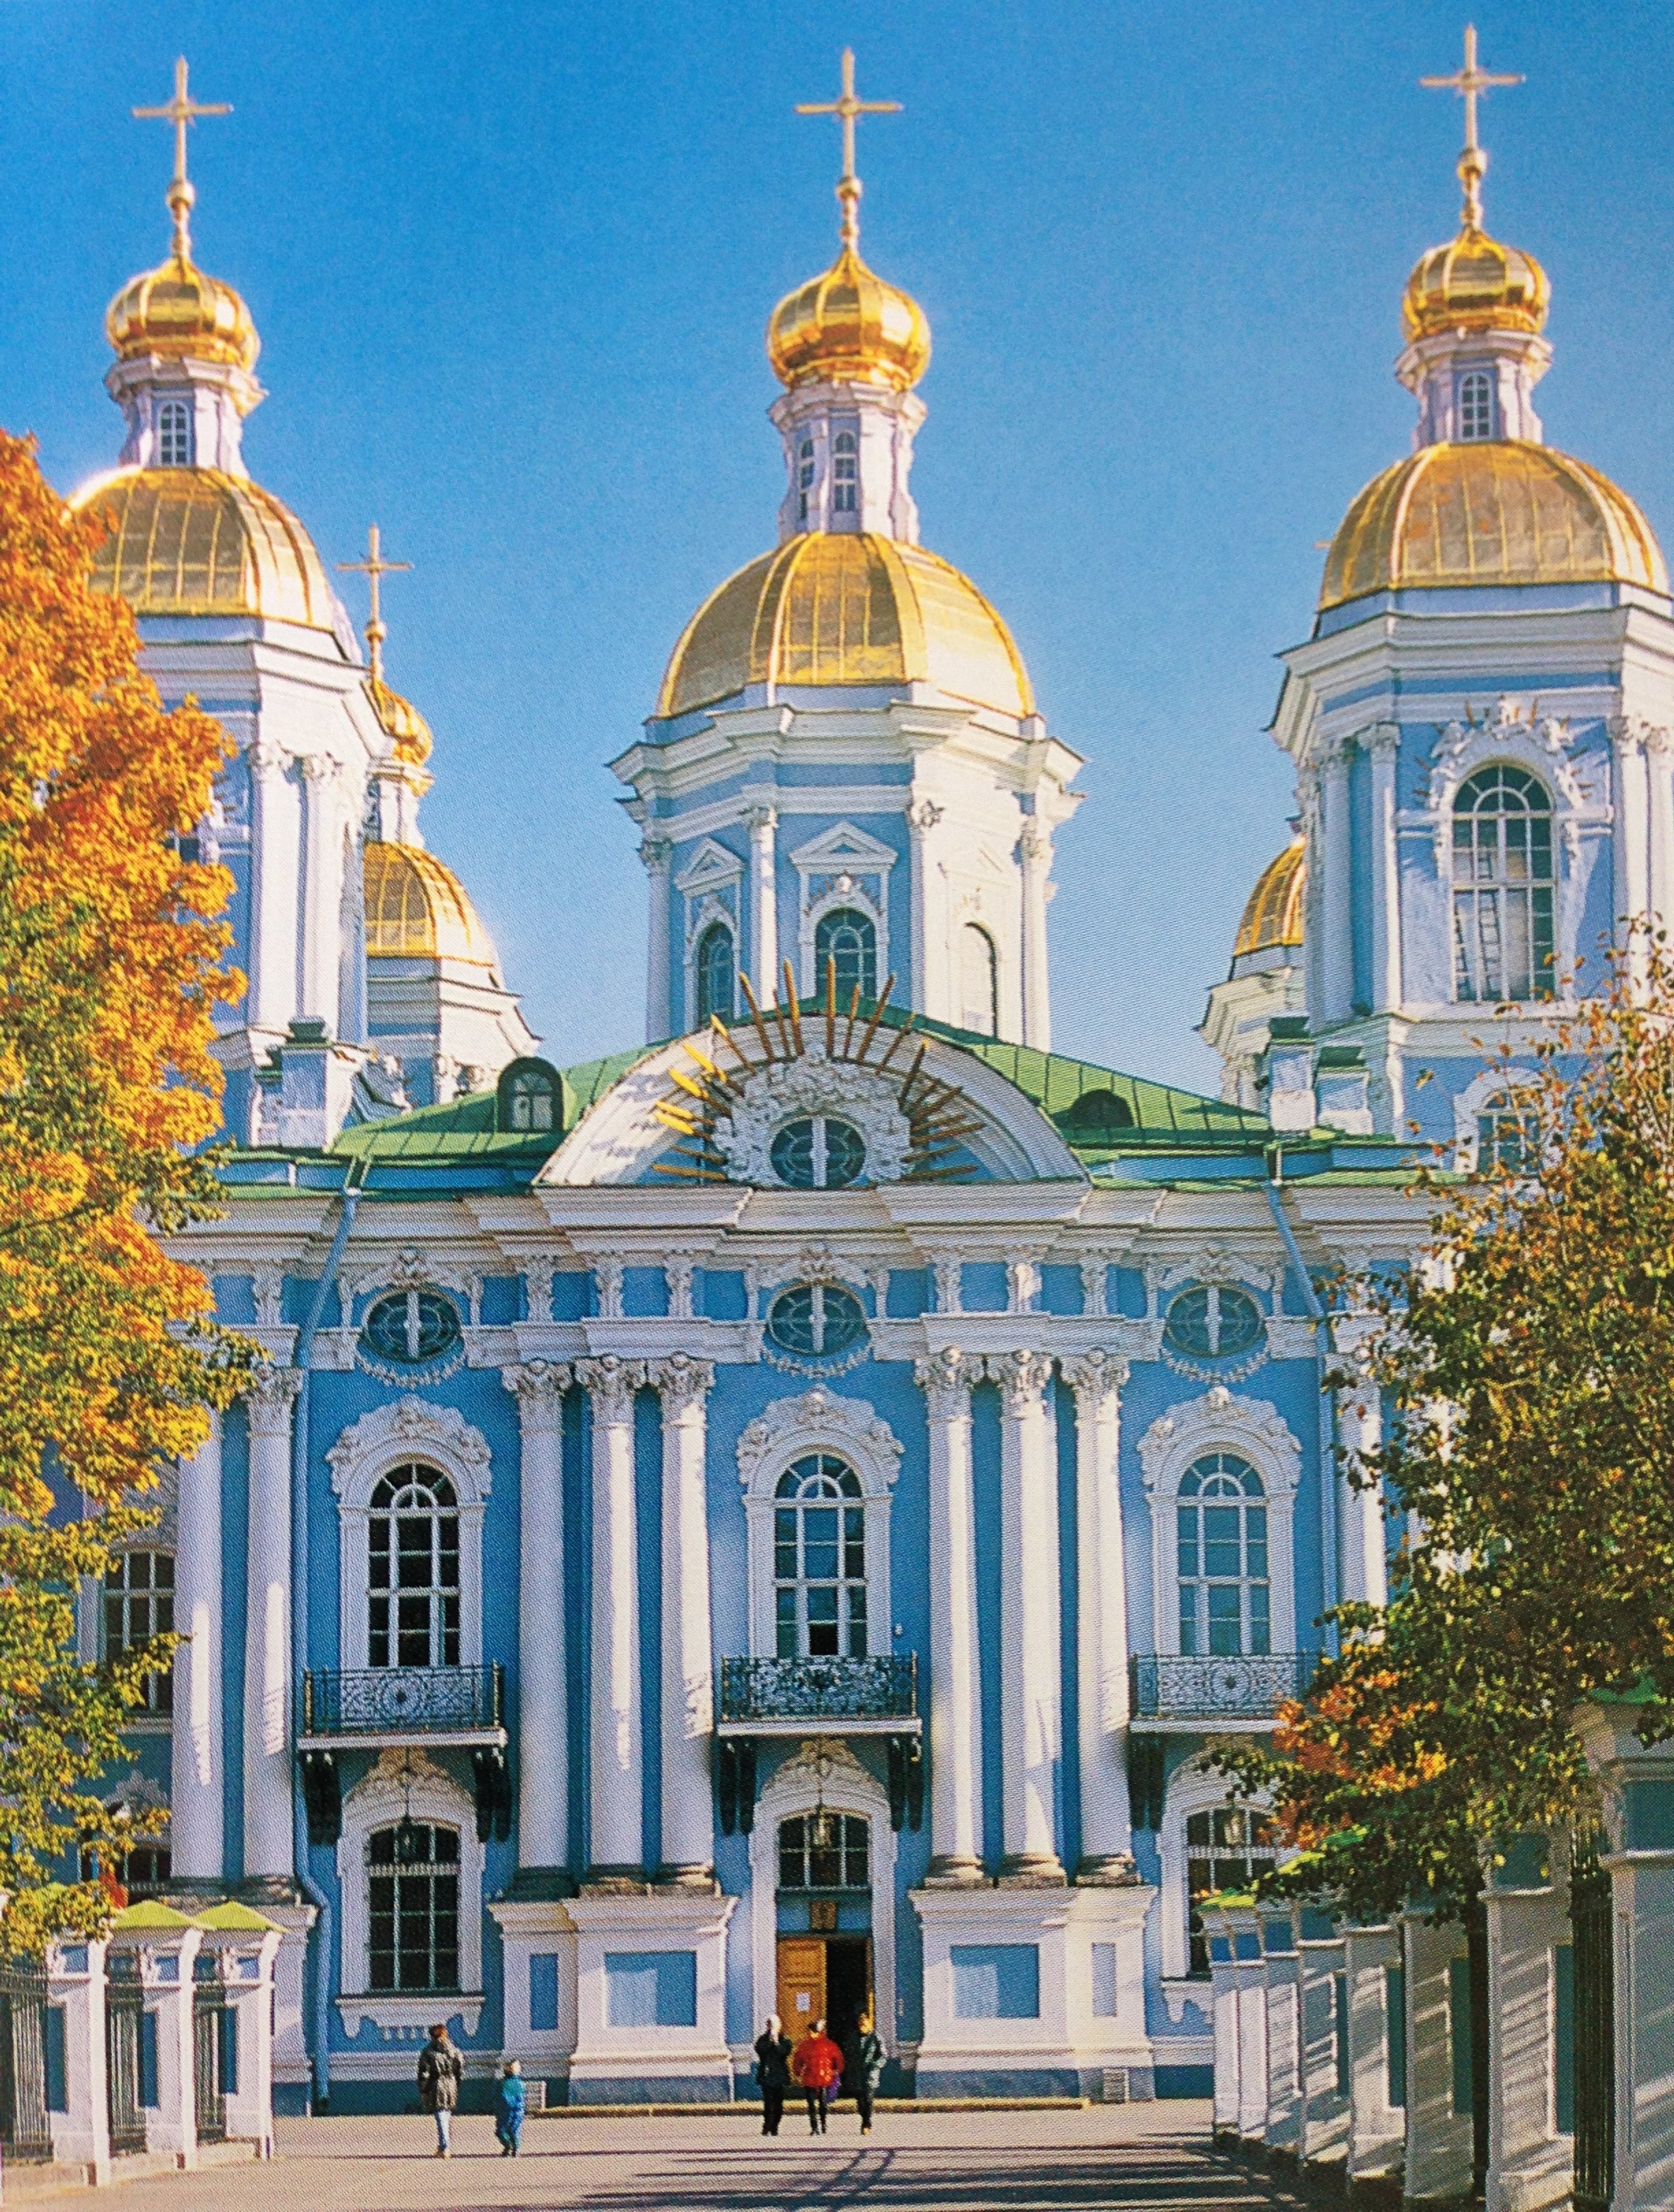 The St. Nicholas Cathedral